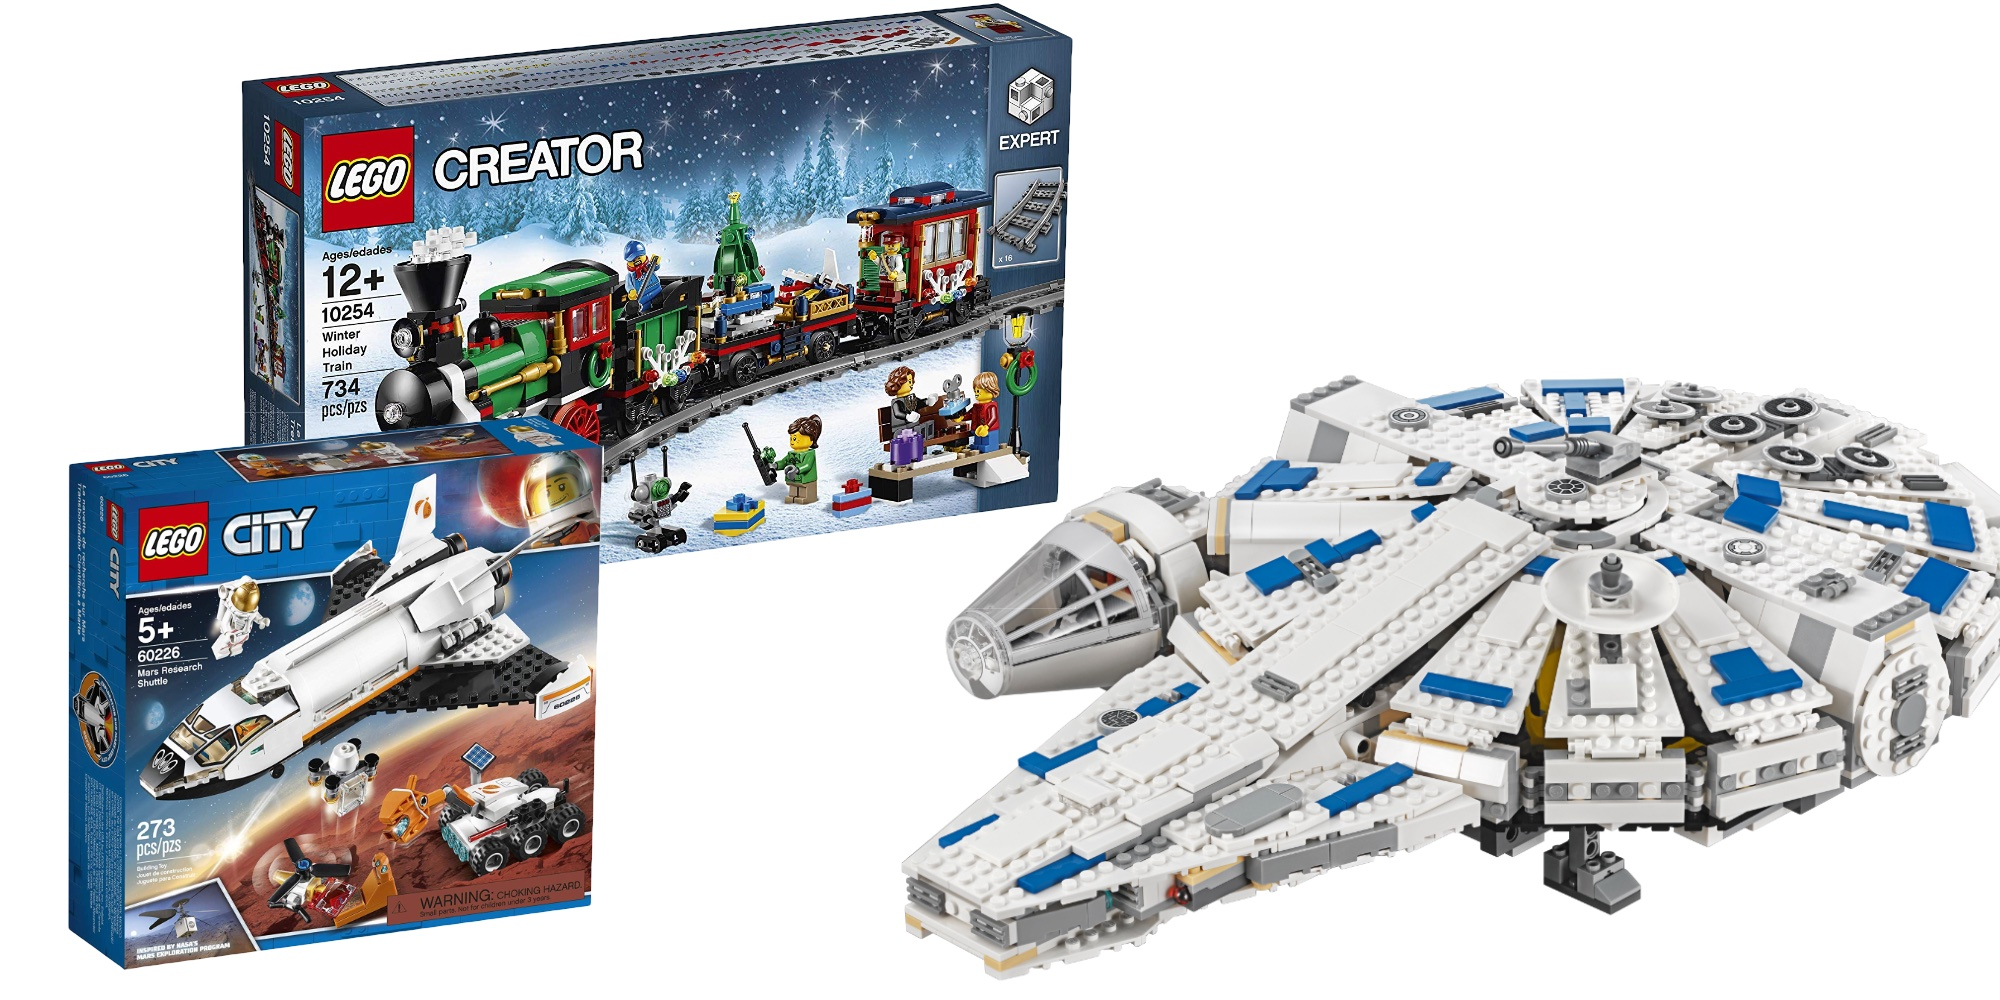 Amazon Offers Deep Discounts On Lego Star Wars Creator City More From 8 9to5toys